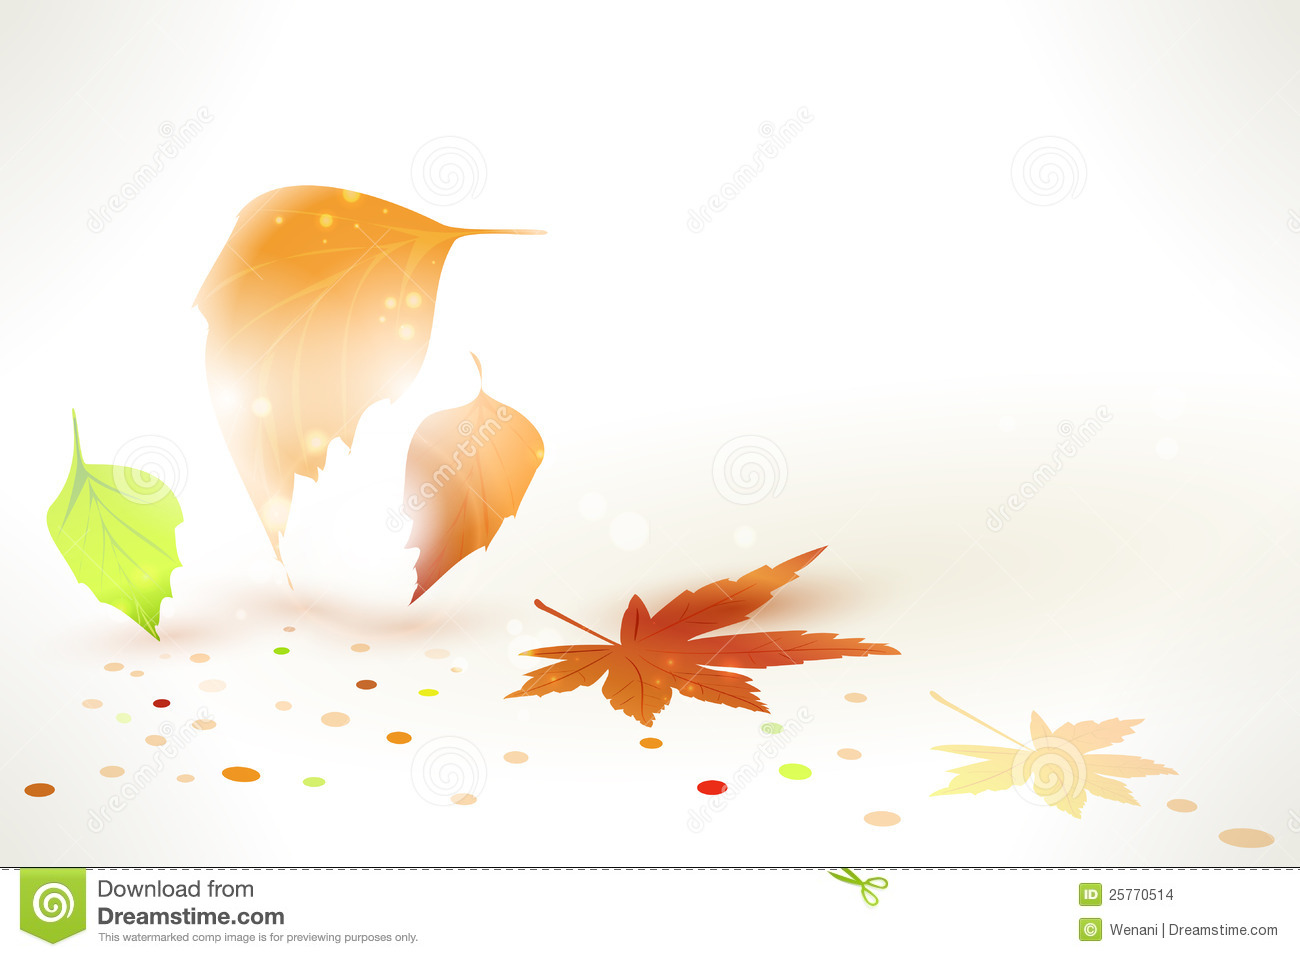 Fall Leaves Wallpaper Powerpoint Background Abstract Autumn Leaves Vector Background Stock Vector